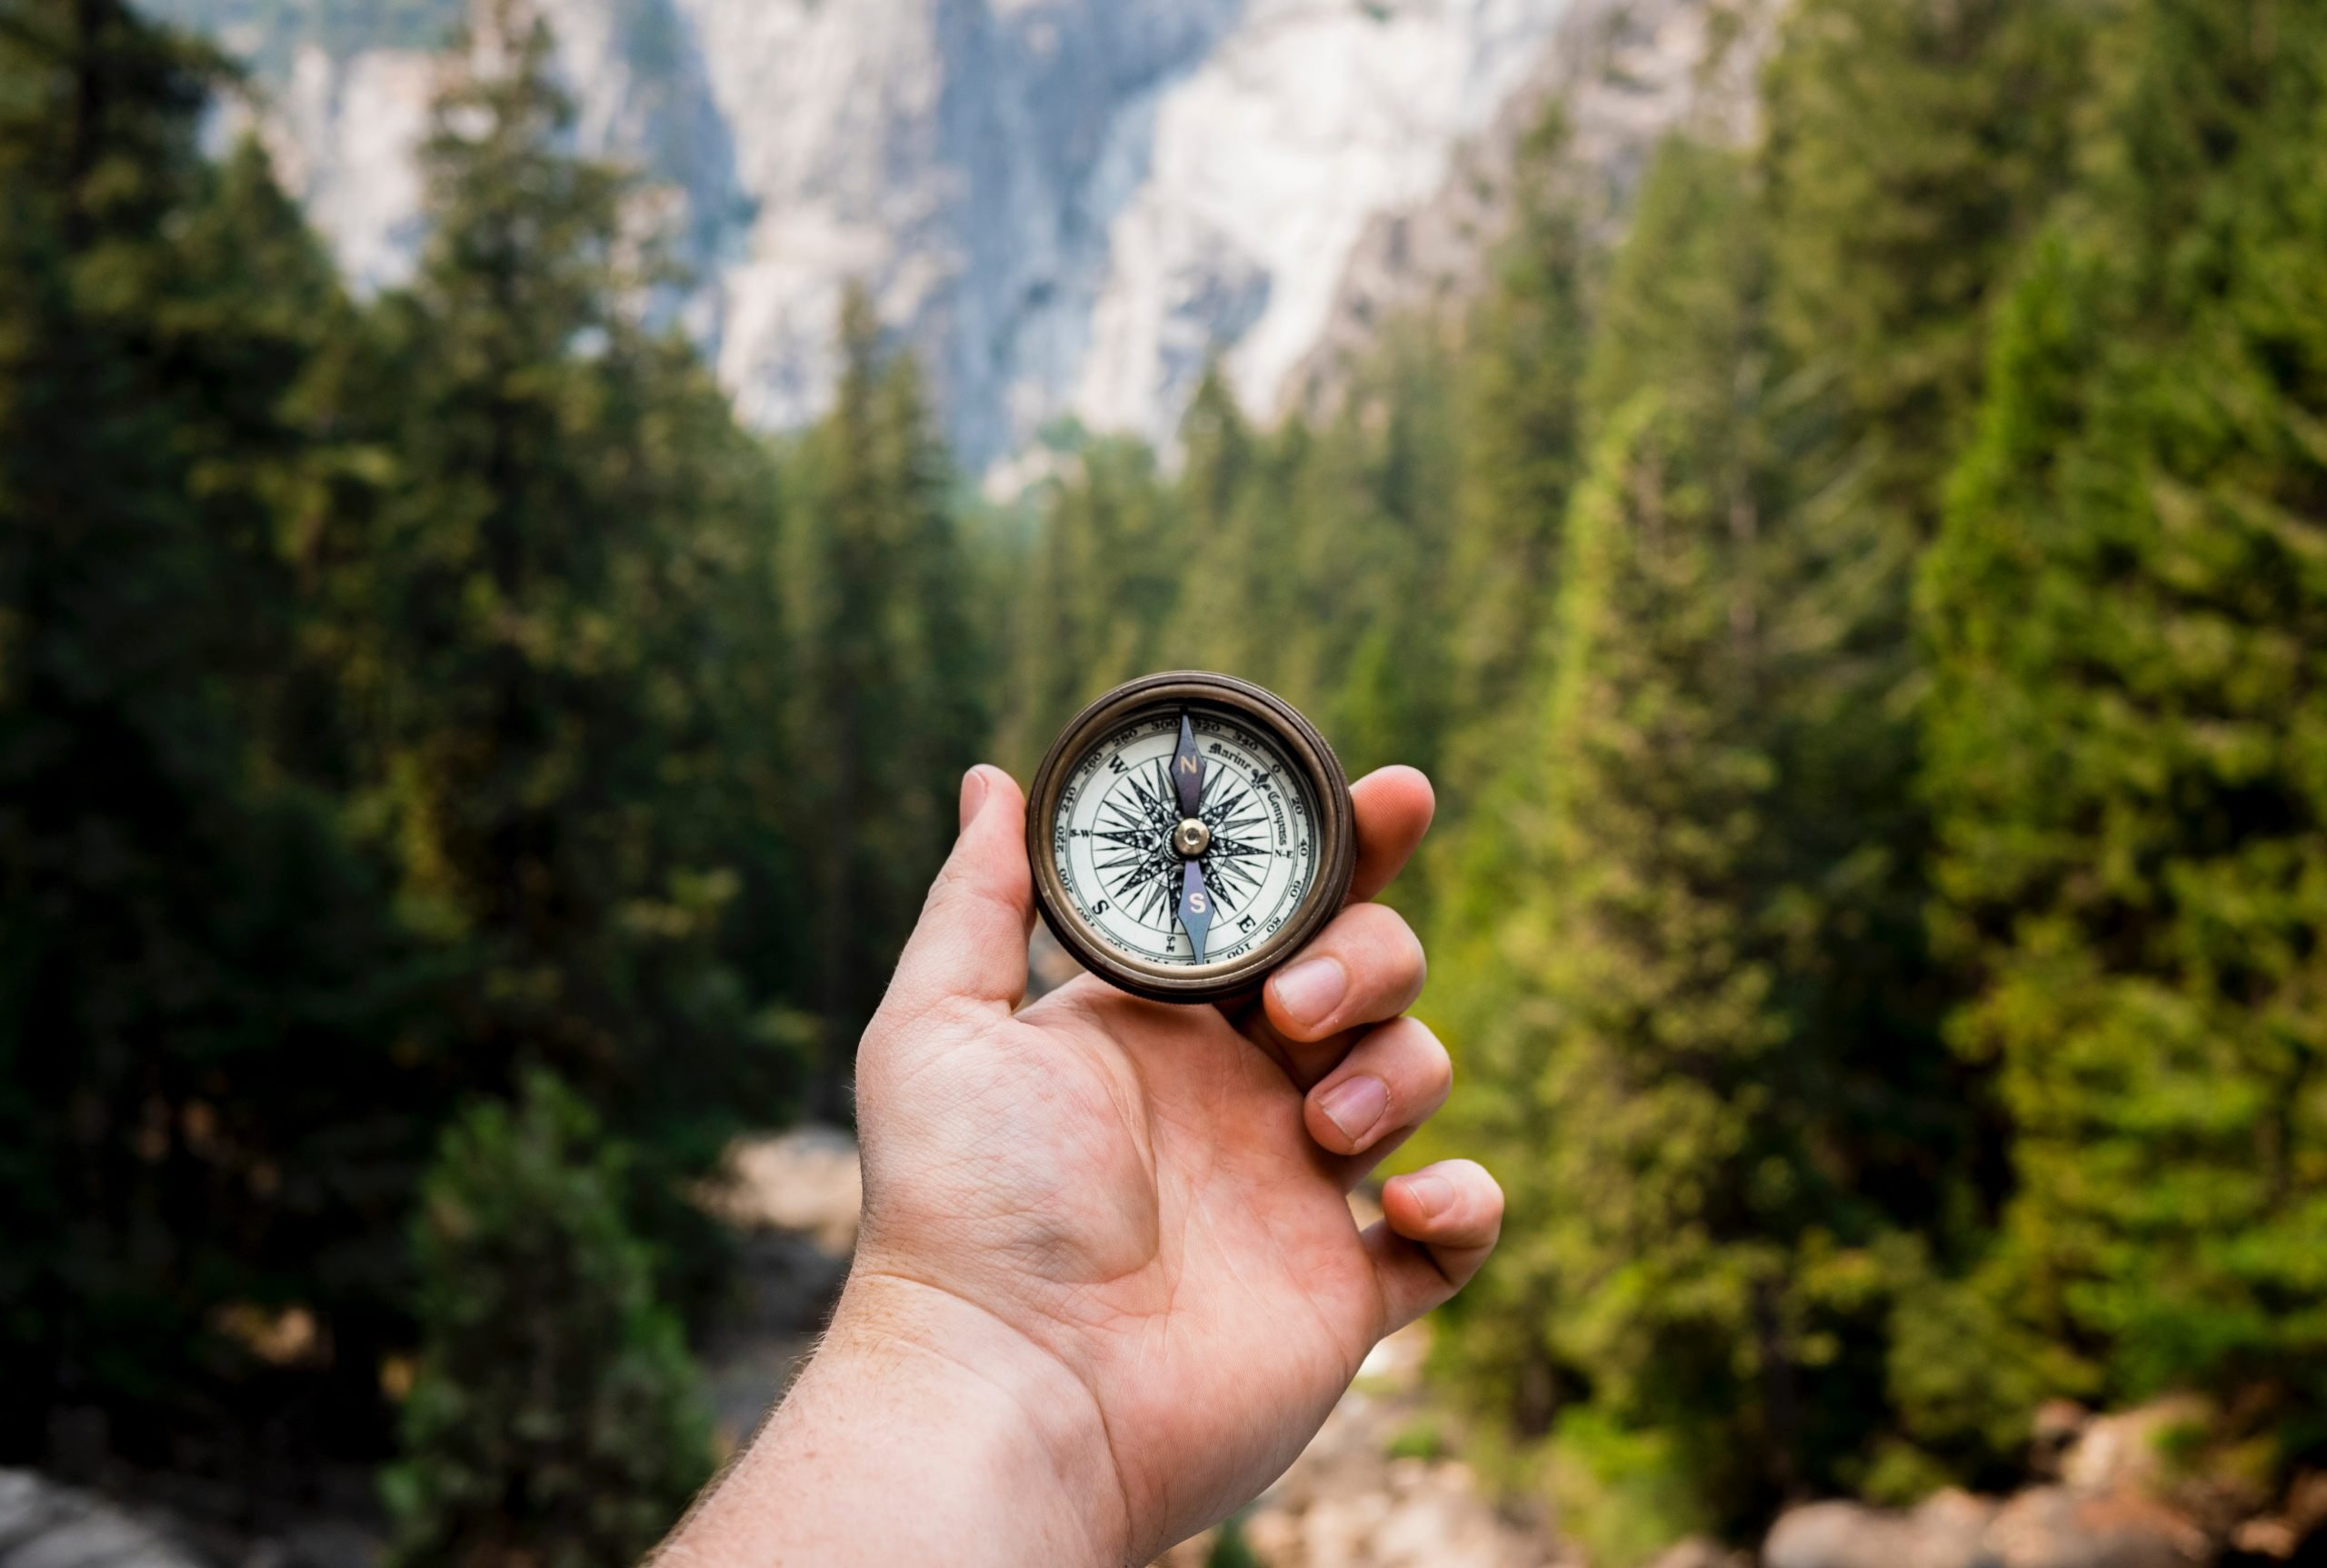 hand holding up compass towards trees and sky